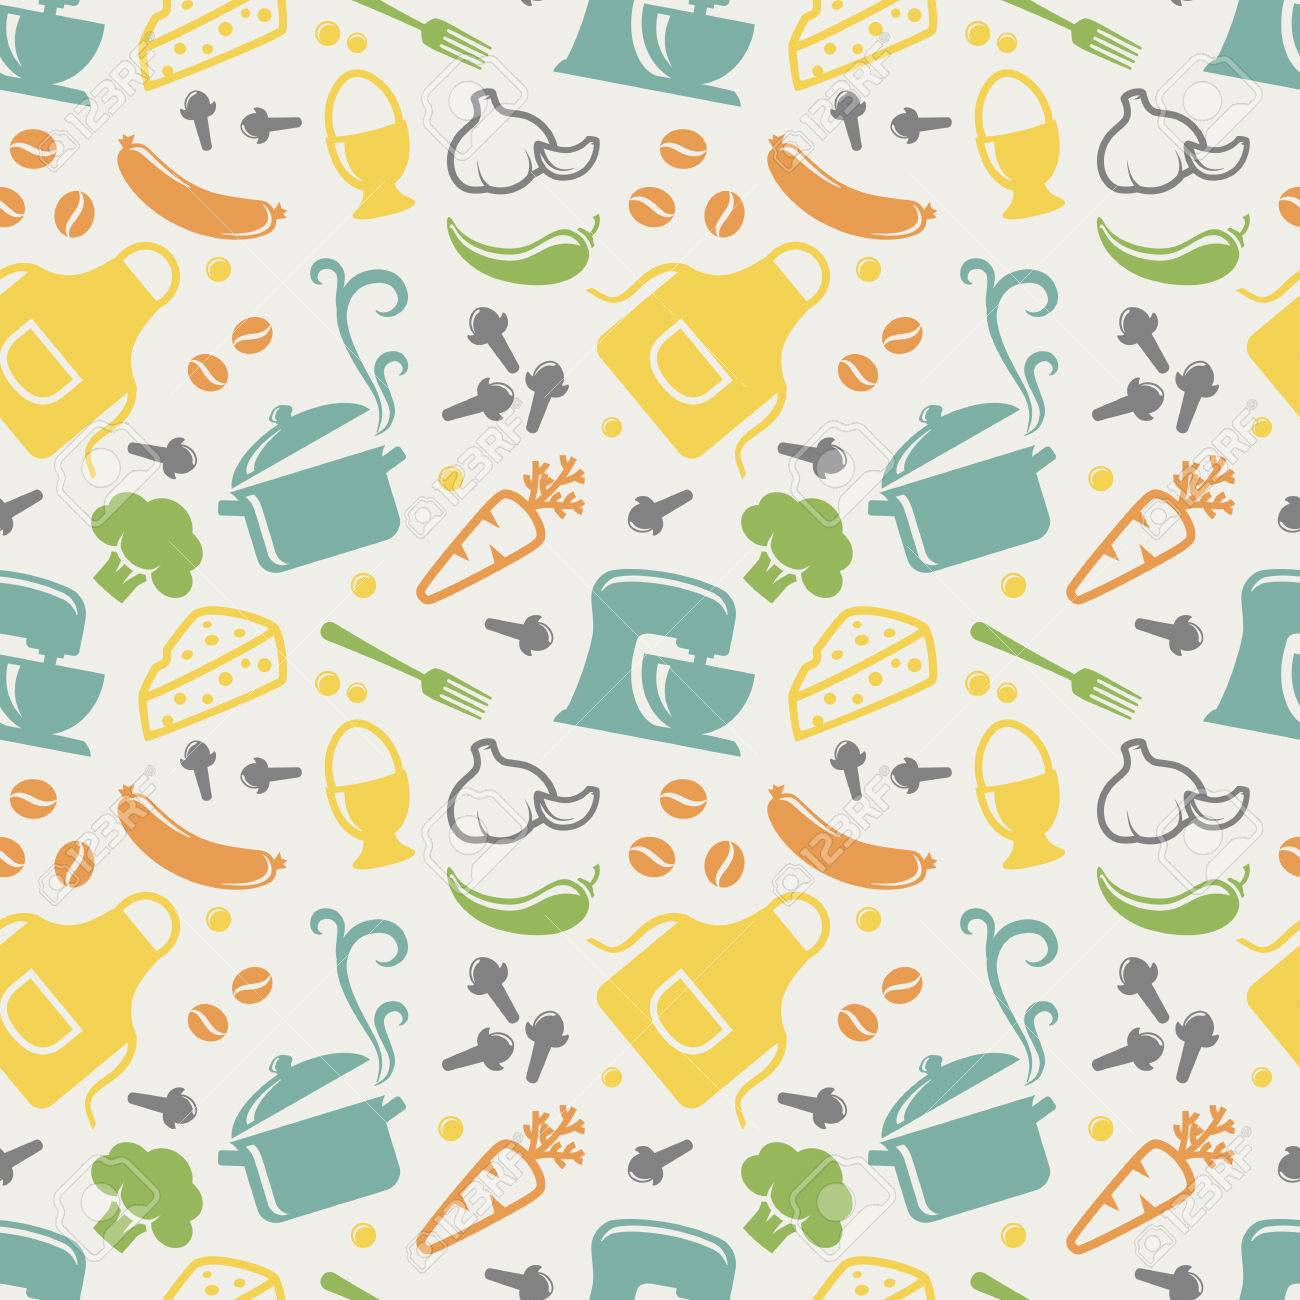 Food and kitchen seamless pattern in blue, yellow, orange, green, purple and grey pastel colors. Retro background with cute icons for culinary theme. Vector illustration. - 49905345